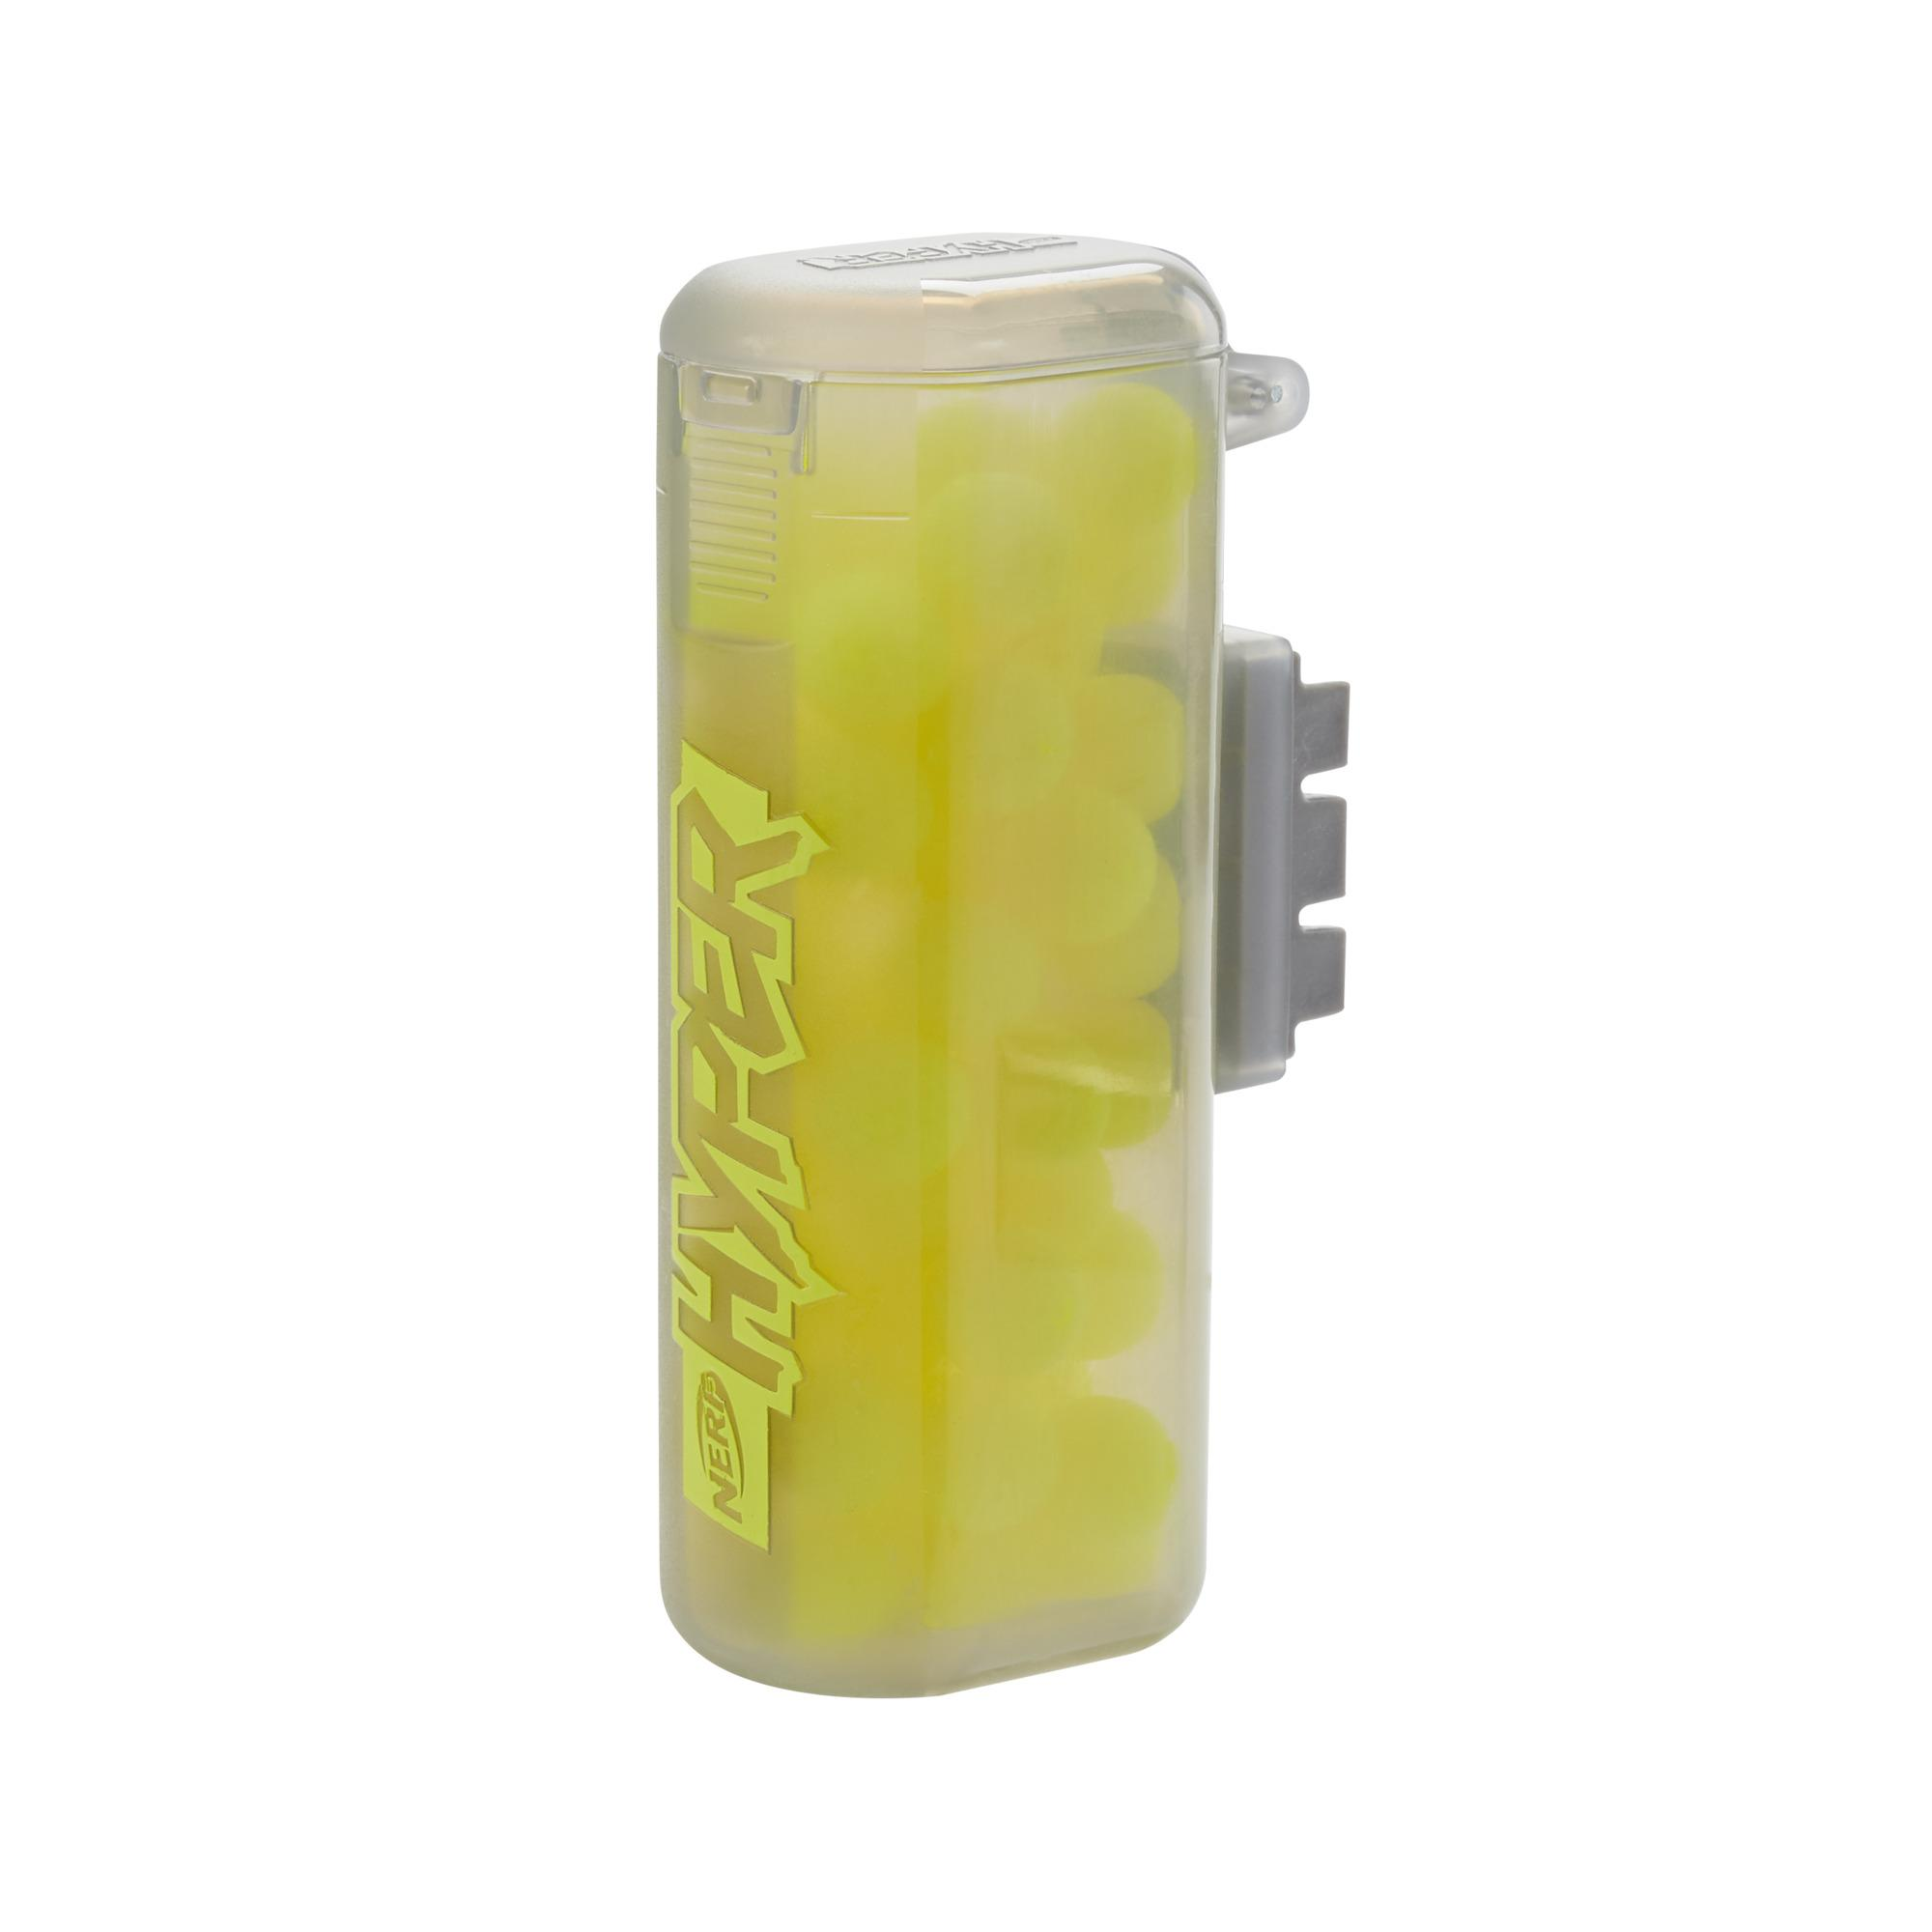 Nerf Hyper 50-Round Refill Canister -- Includes Easy Reload Canister and 50 Nerf Hyper Rounds For Nerf Hyper Blasters